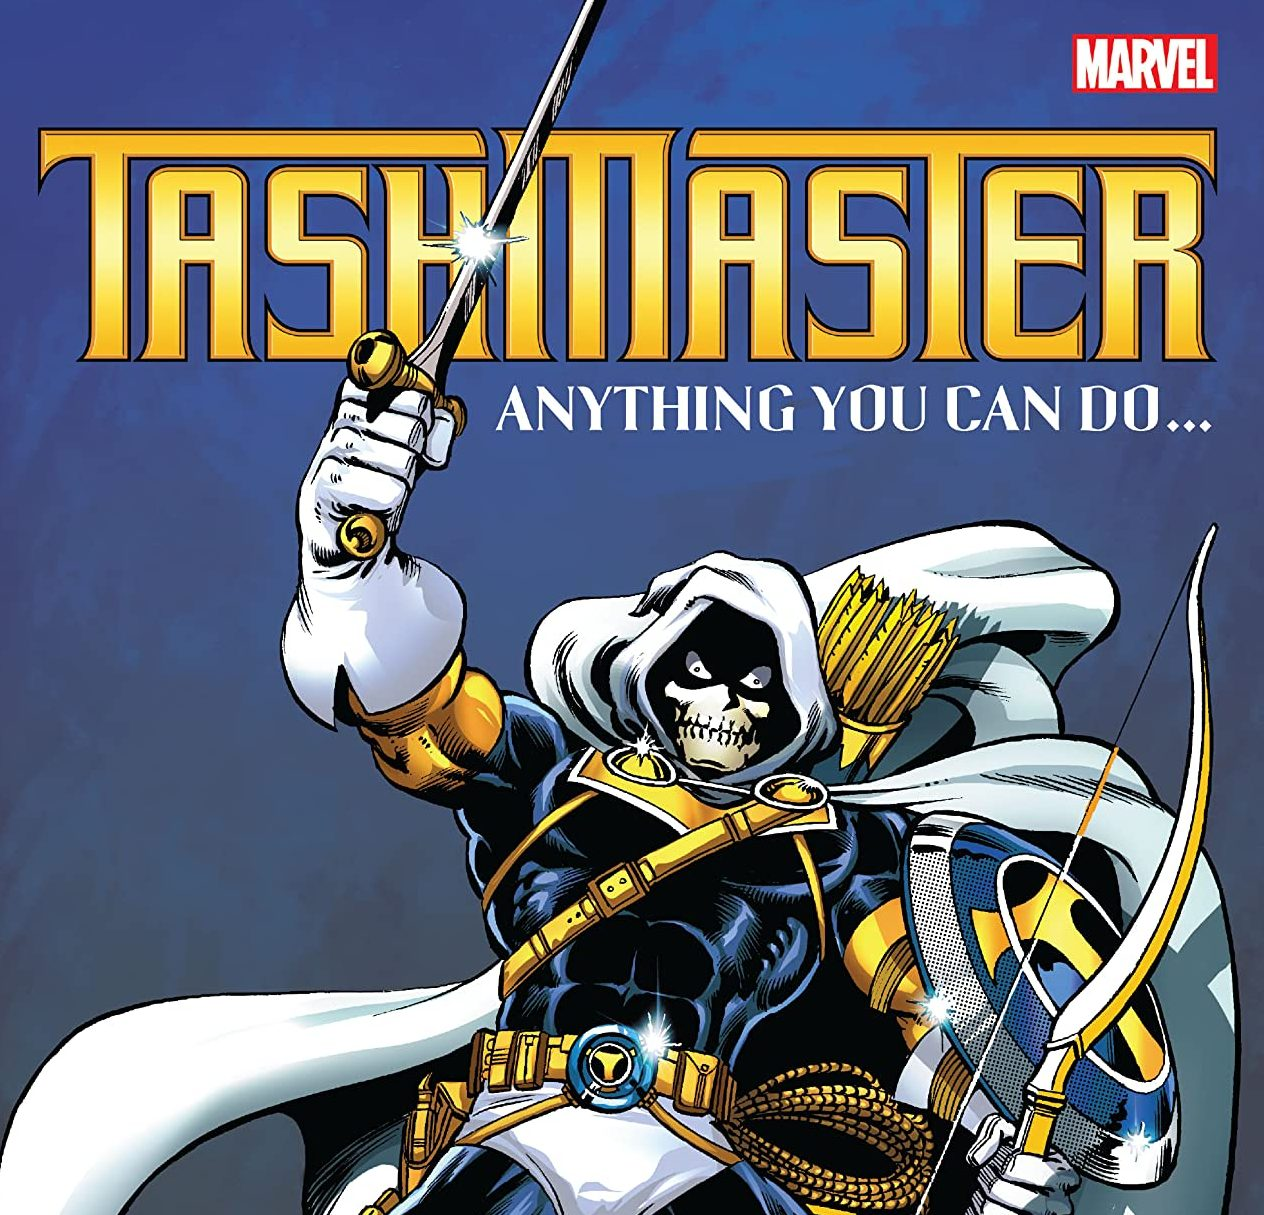 'Taskmaster: Anything You Can Do...' Review